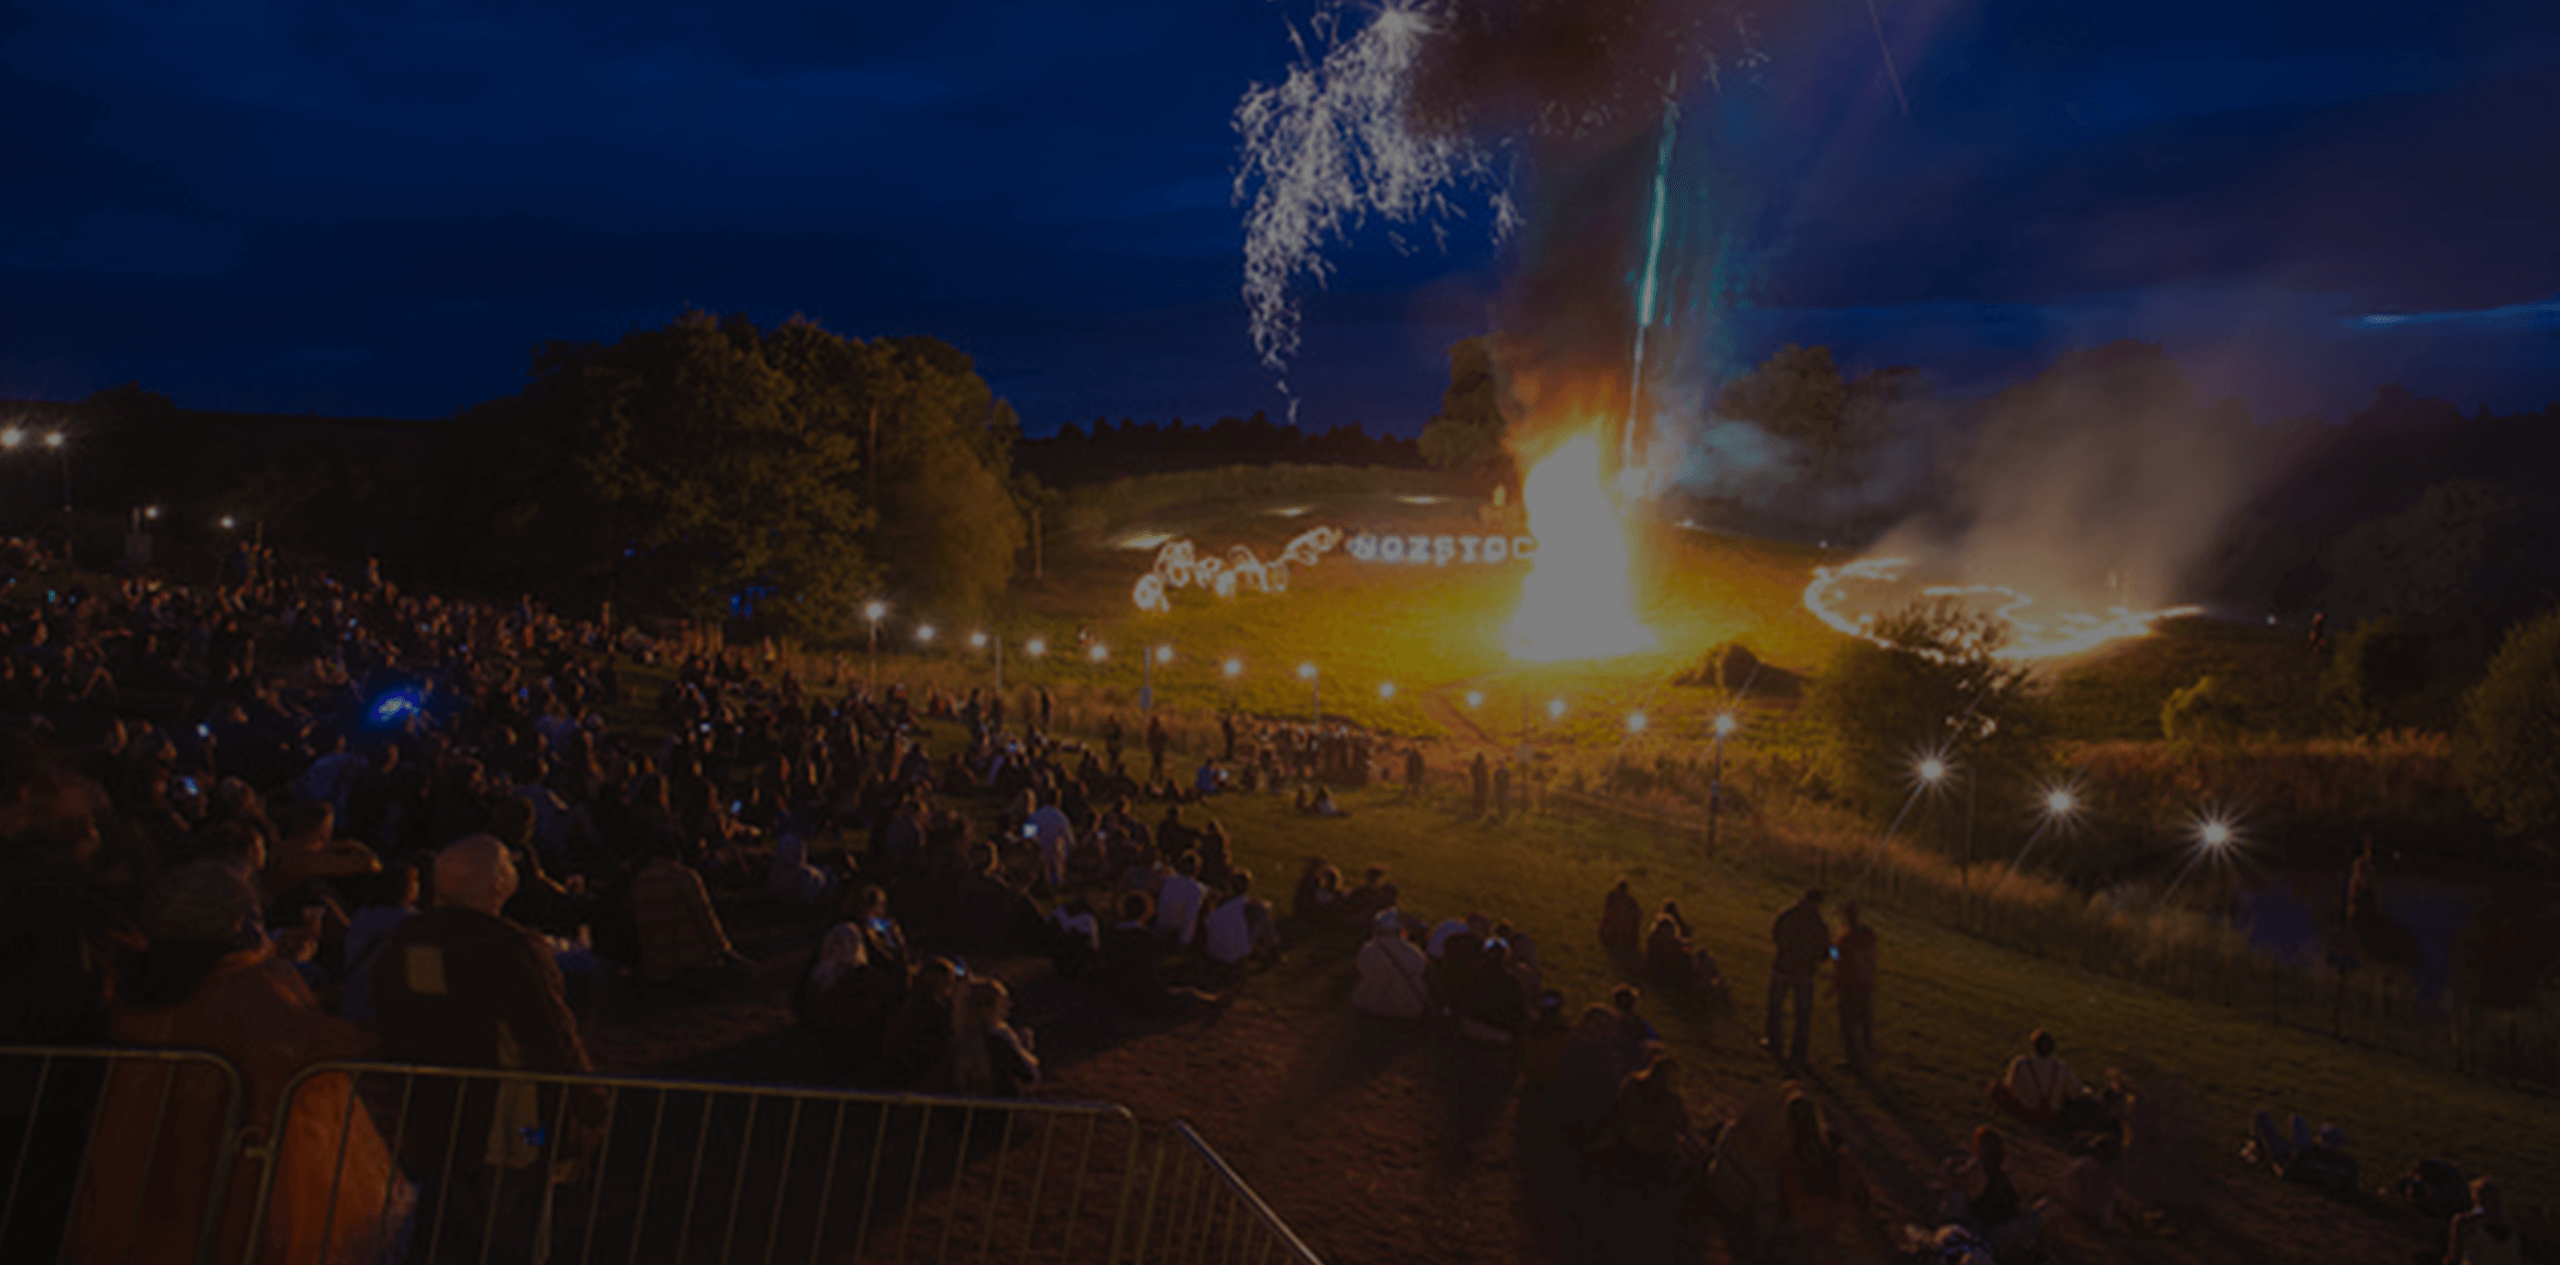 Travelling to Nozstock 2019